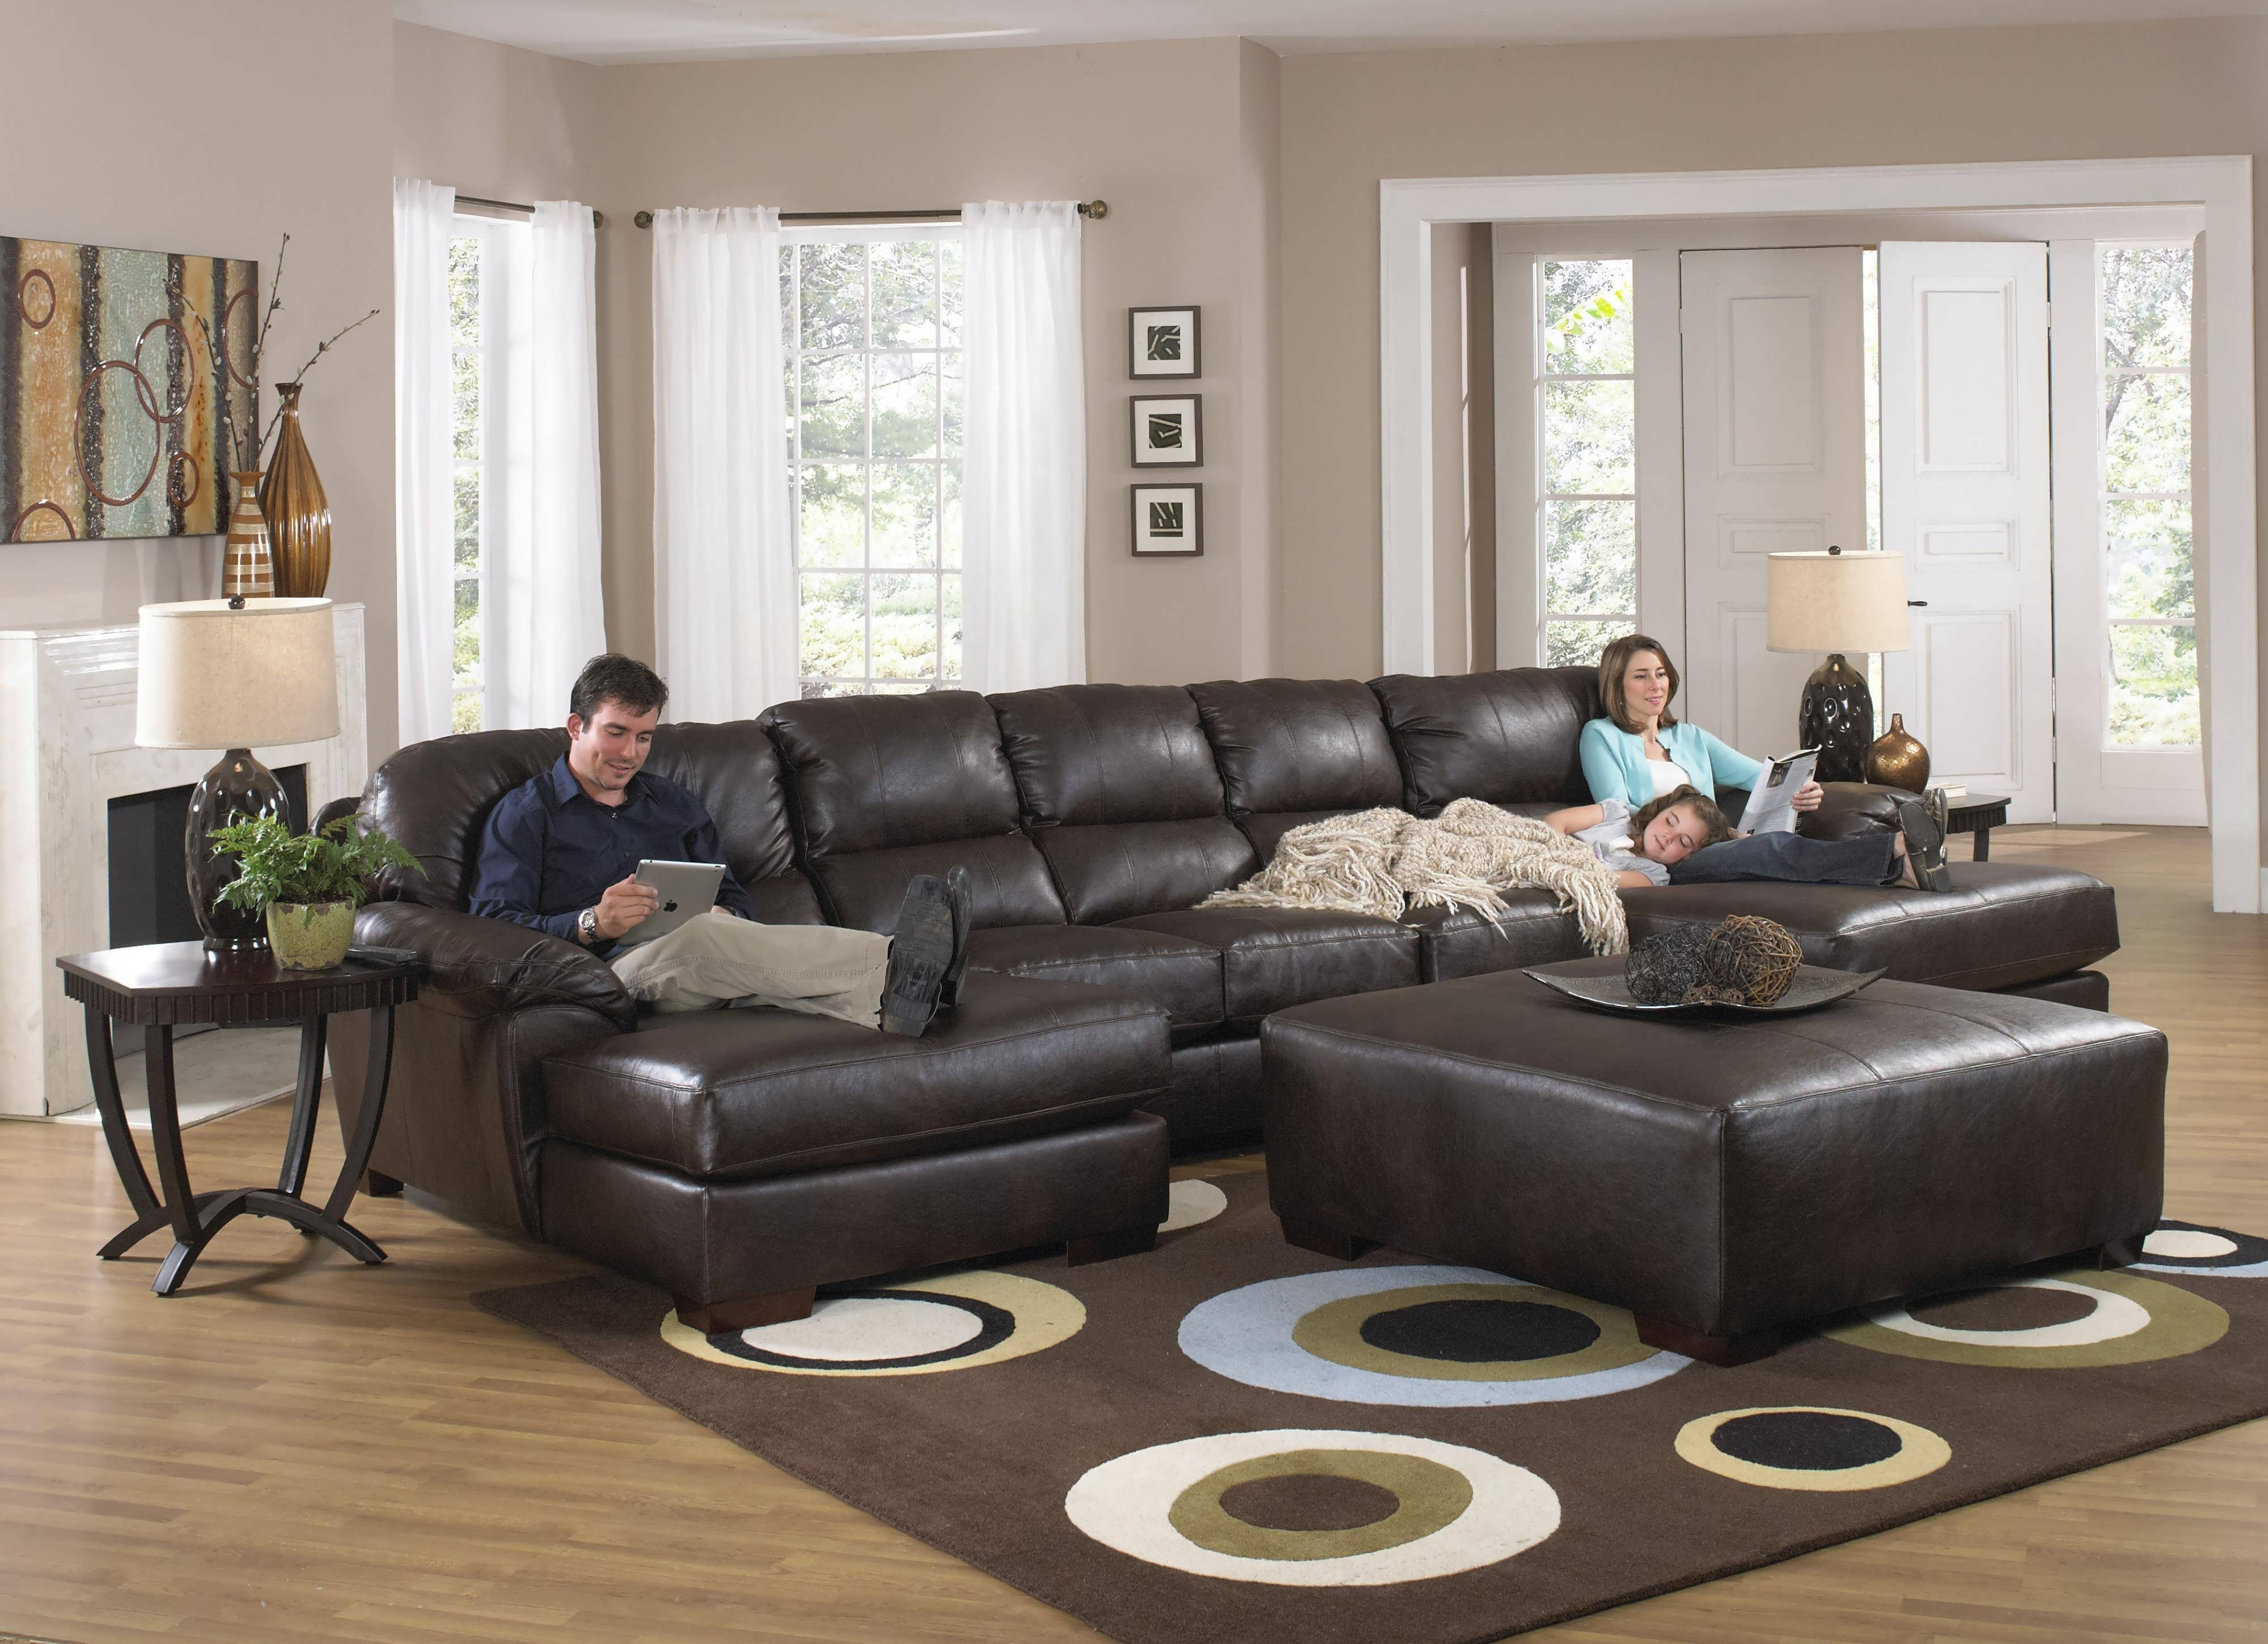 2017 Sofa : Microfiber Sectional Grey Sectional Wrap Around Couch Cheap With Microfiber Sectionals With Chaise (View 8 of 15)